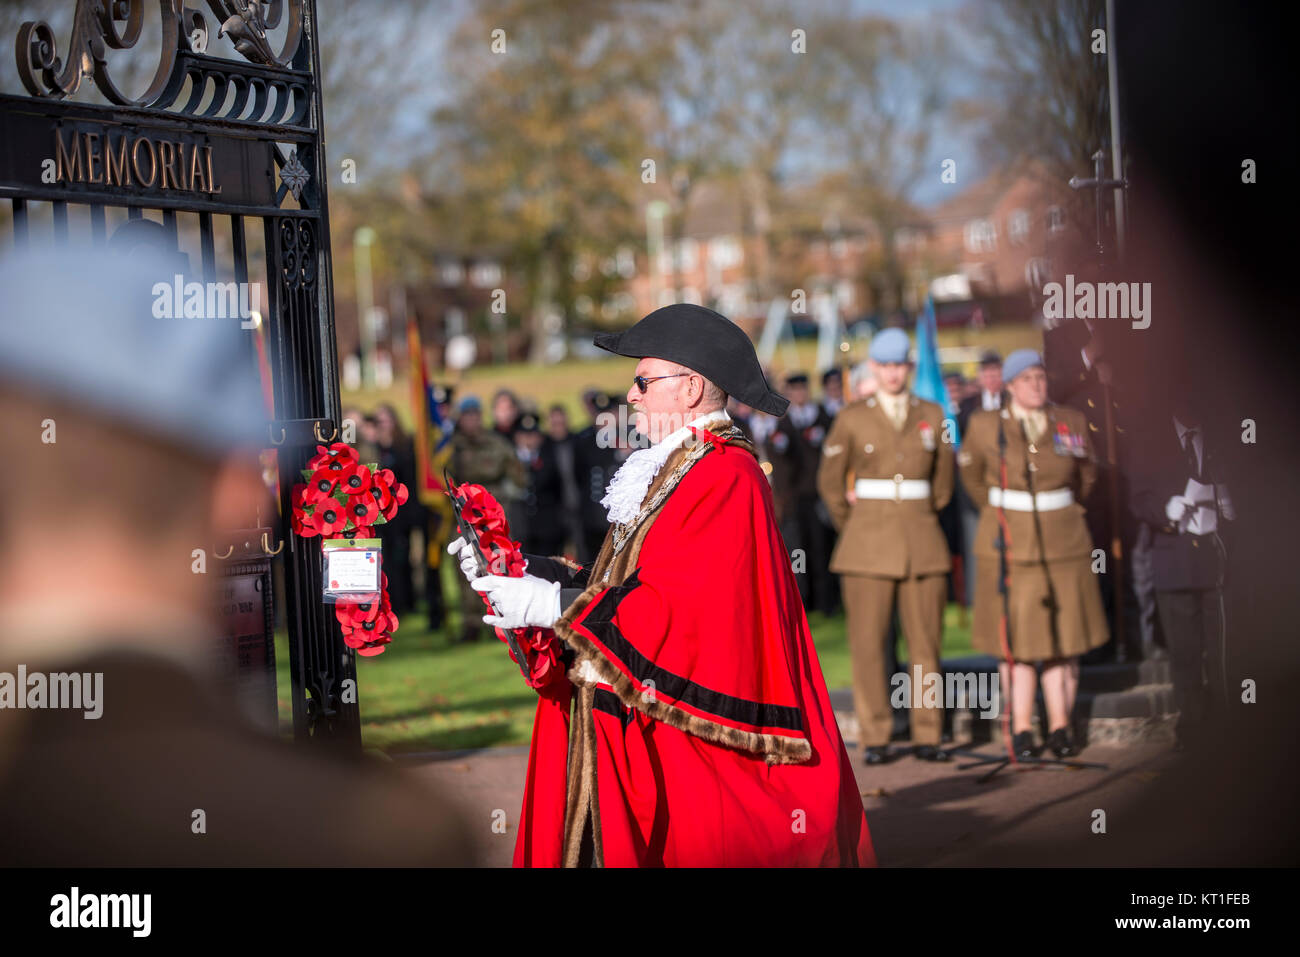 Mayor at Remembrance Day Parade In Stowmarket UK in Bright Red Ceremonial Robe about to Lay Wreath on Memorial Gate - Stock Image